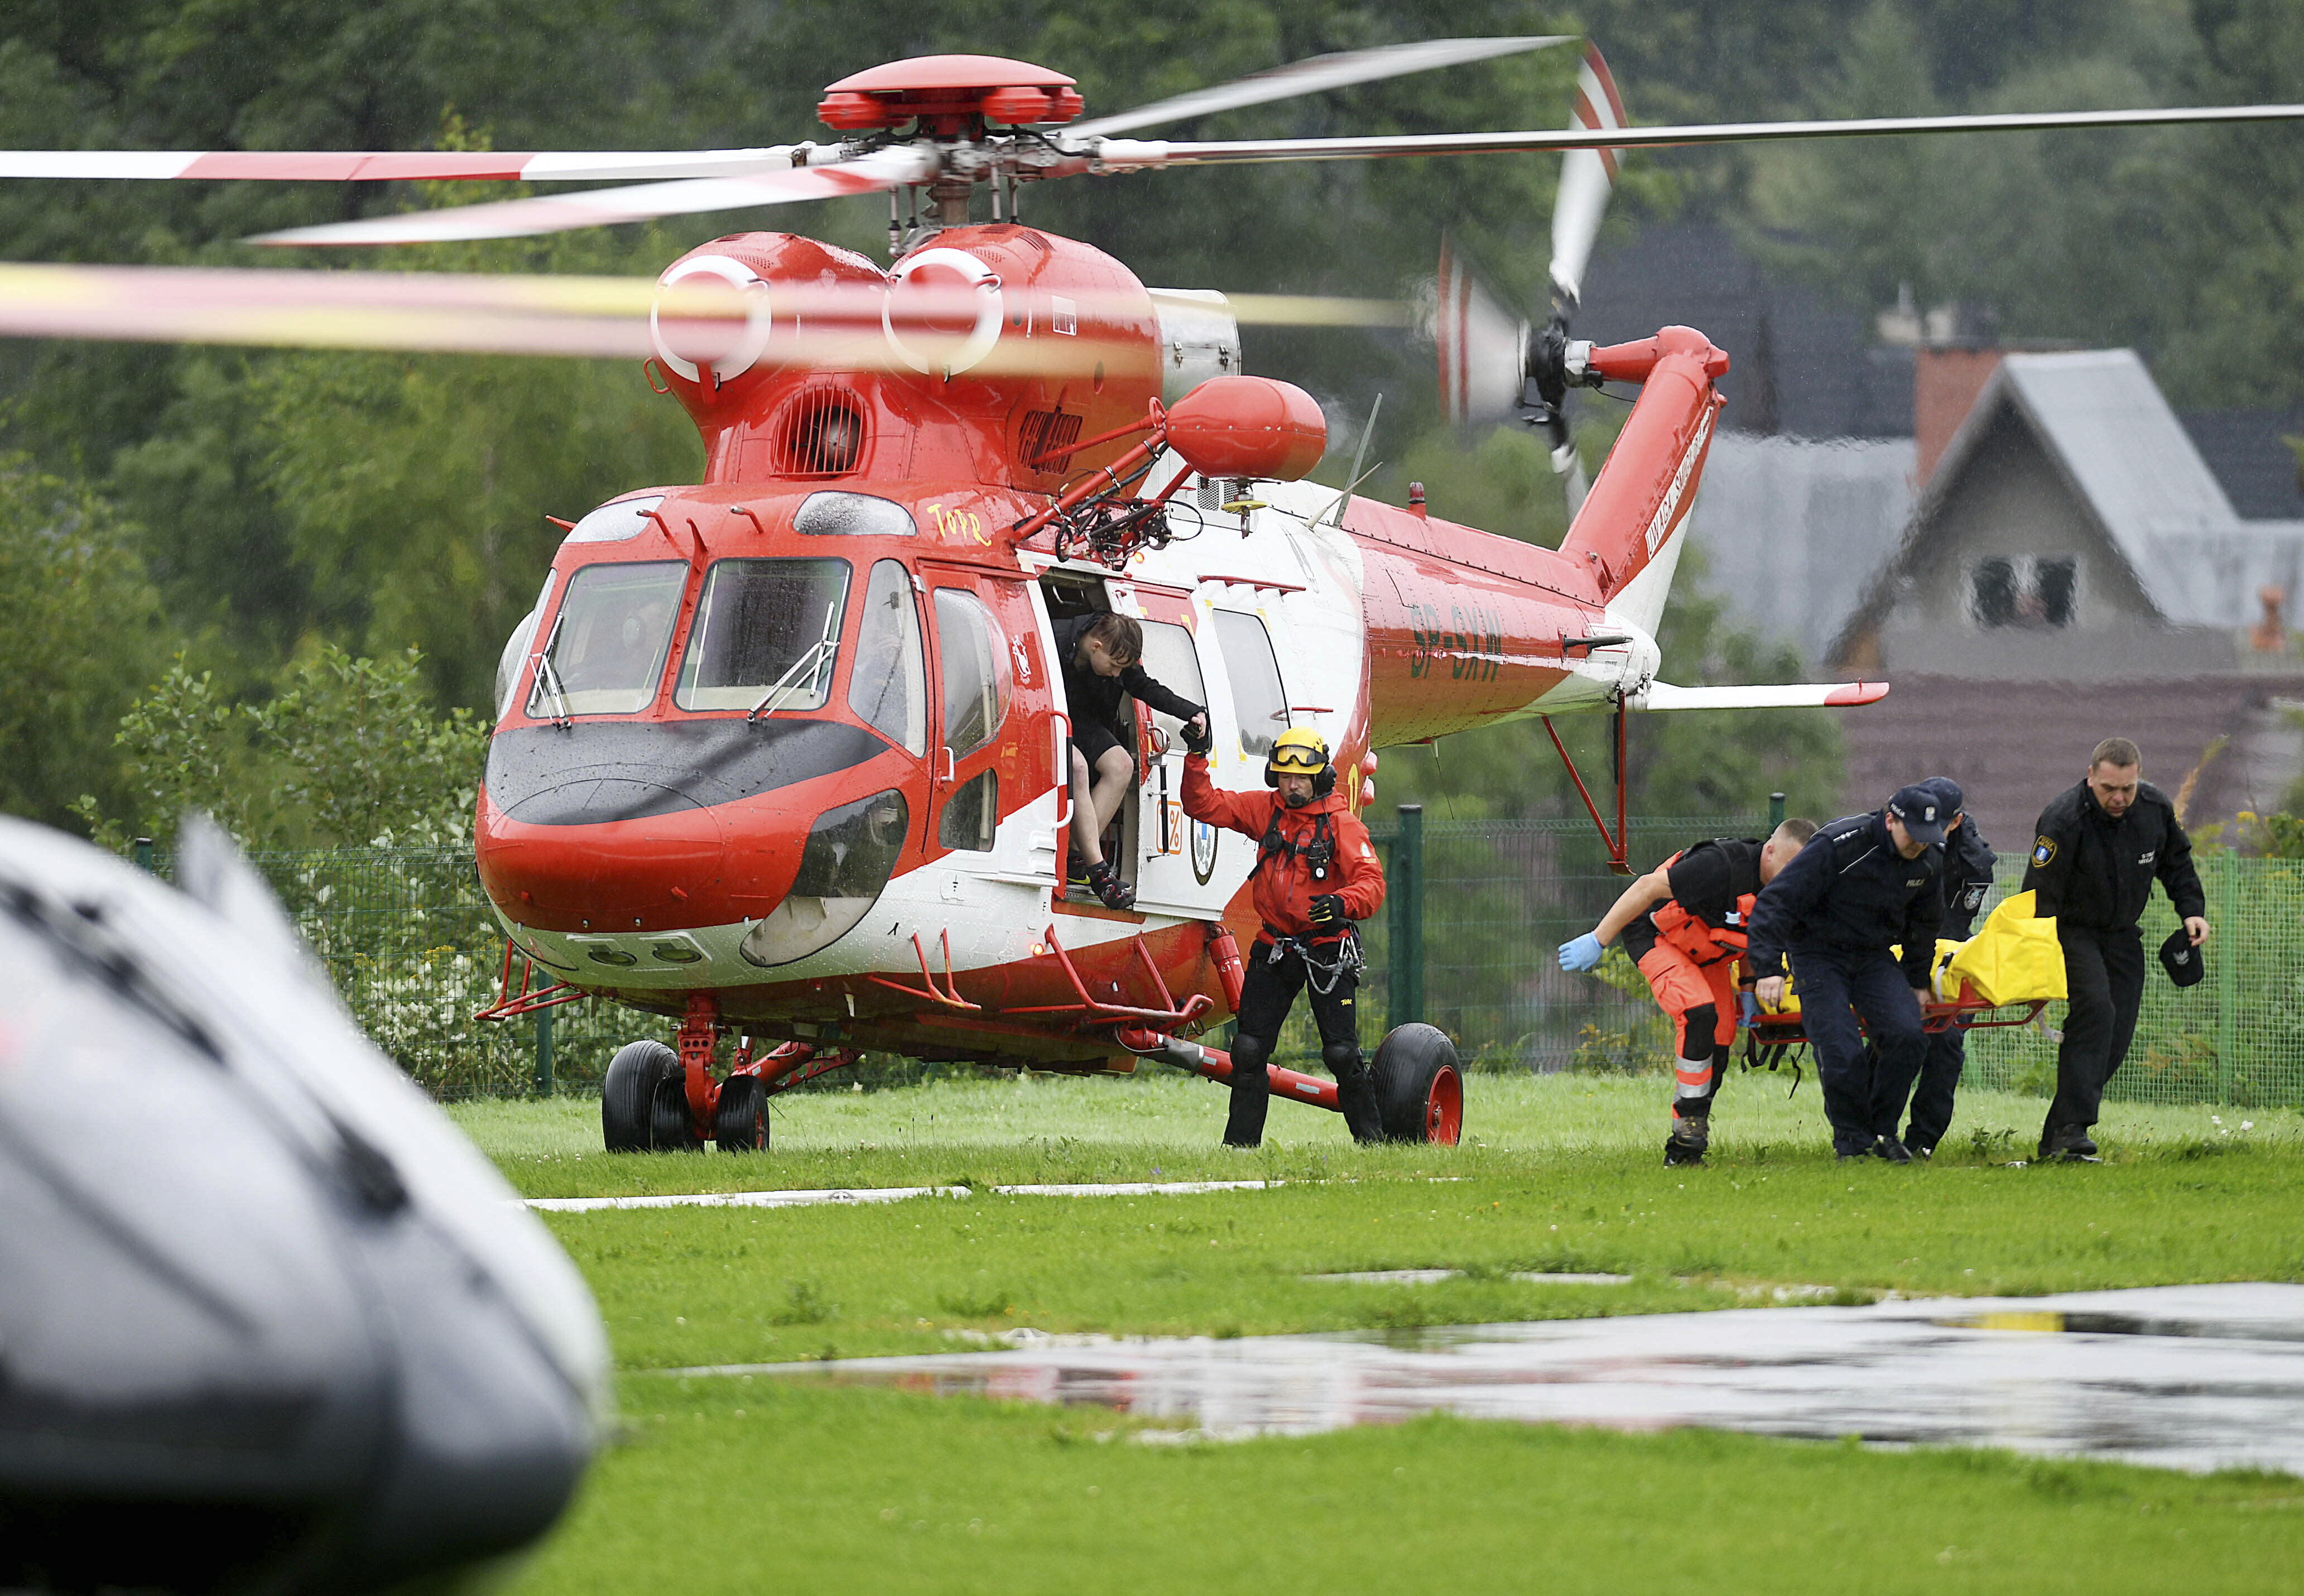 Rescue helicopter have brought to hospital the first people injured by a lighting that struck in Poland's southern Tatra Mountains during a sudden thunderstorm, in Zakopane, Poland, on Thursday, Aug. 22, 2019. (AP Photo/Bartlomiej Jurecki)